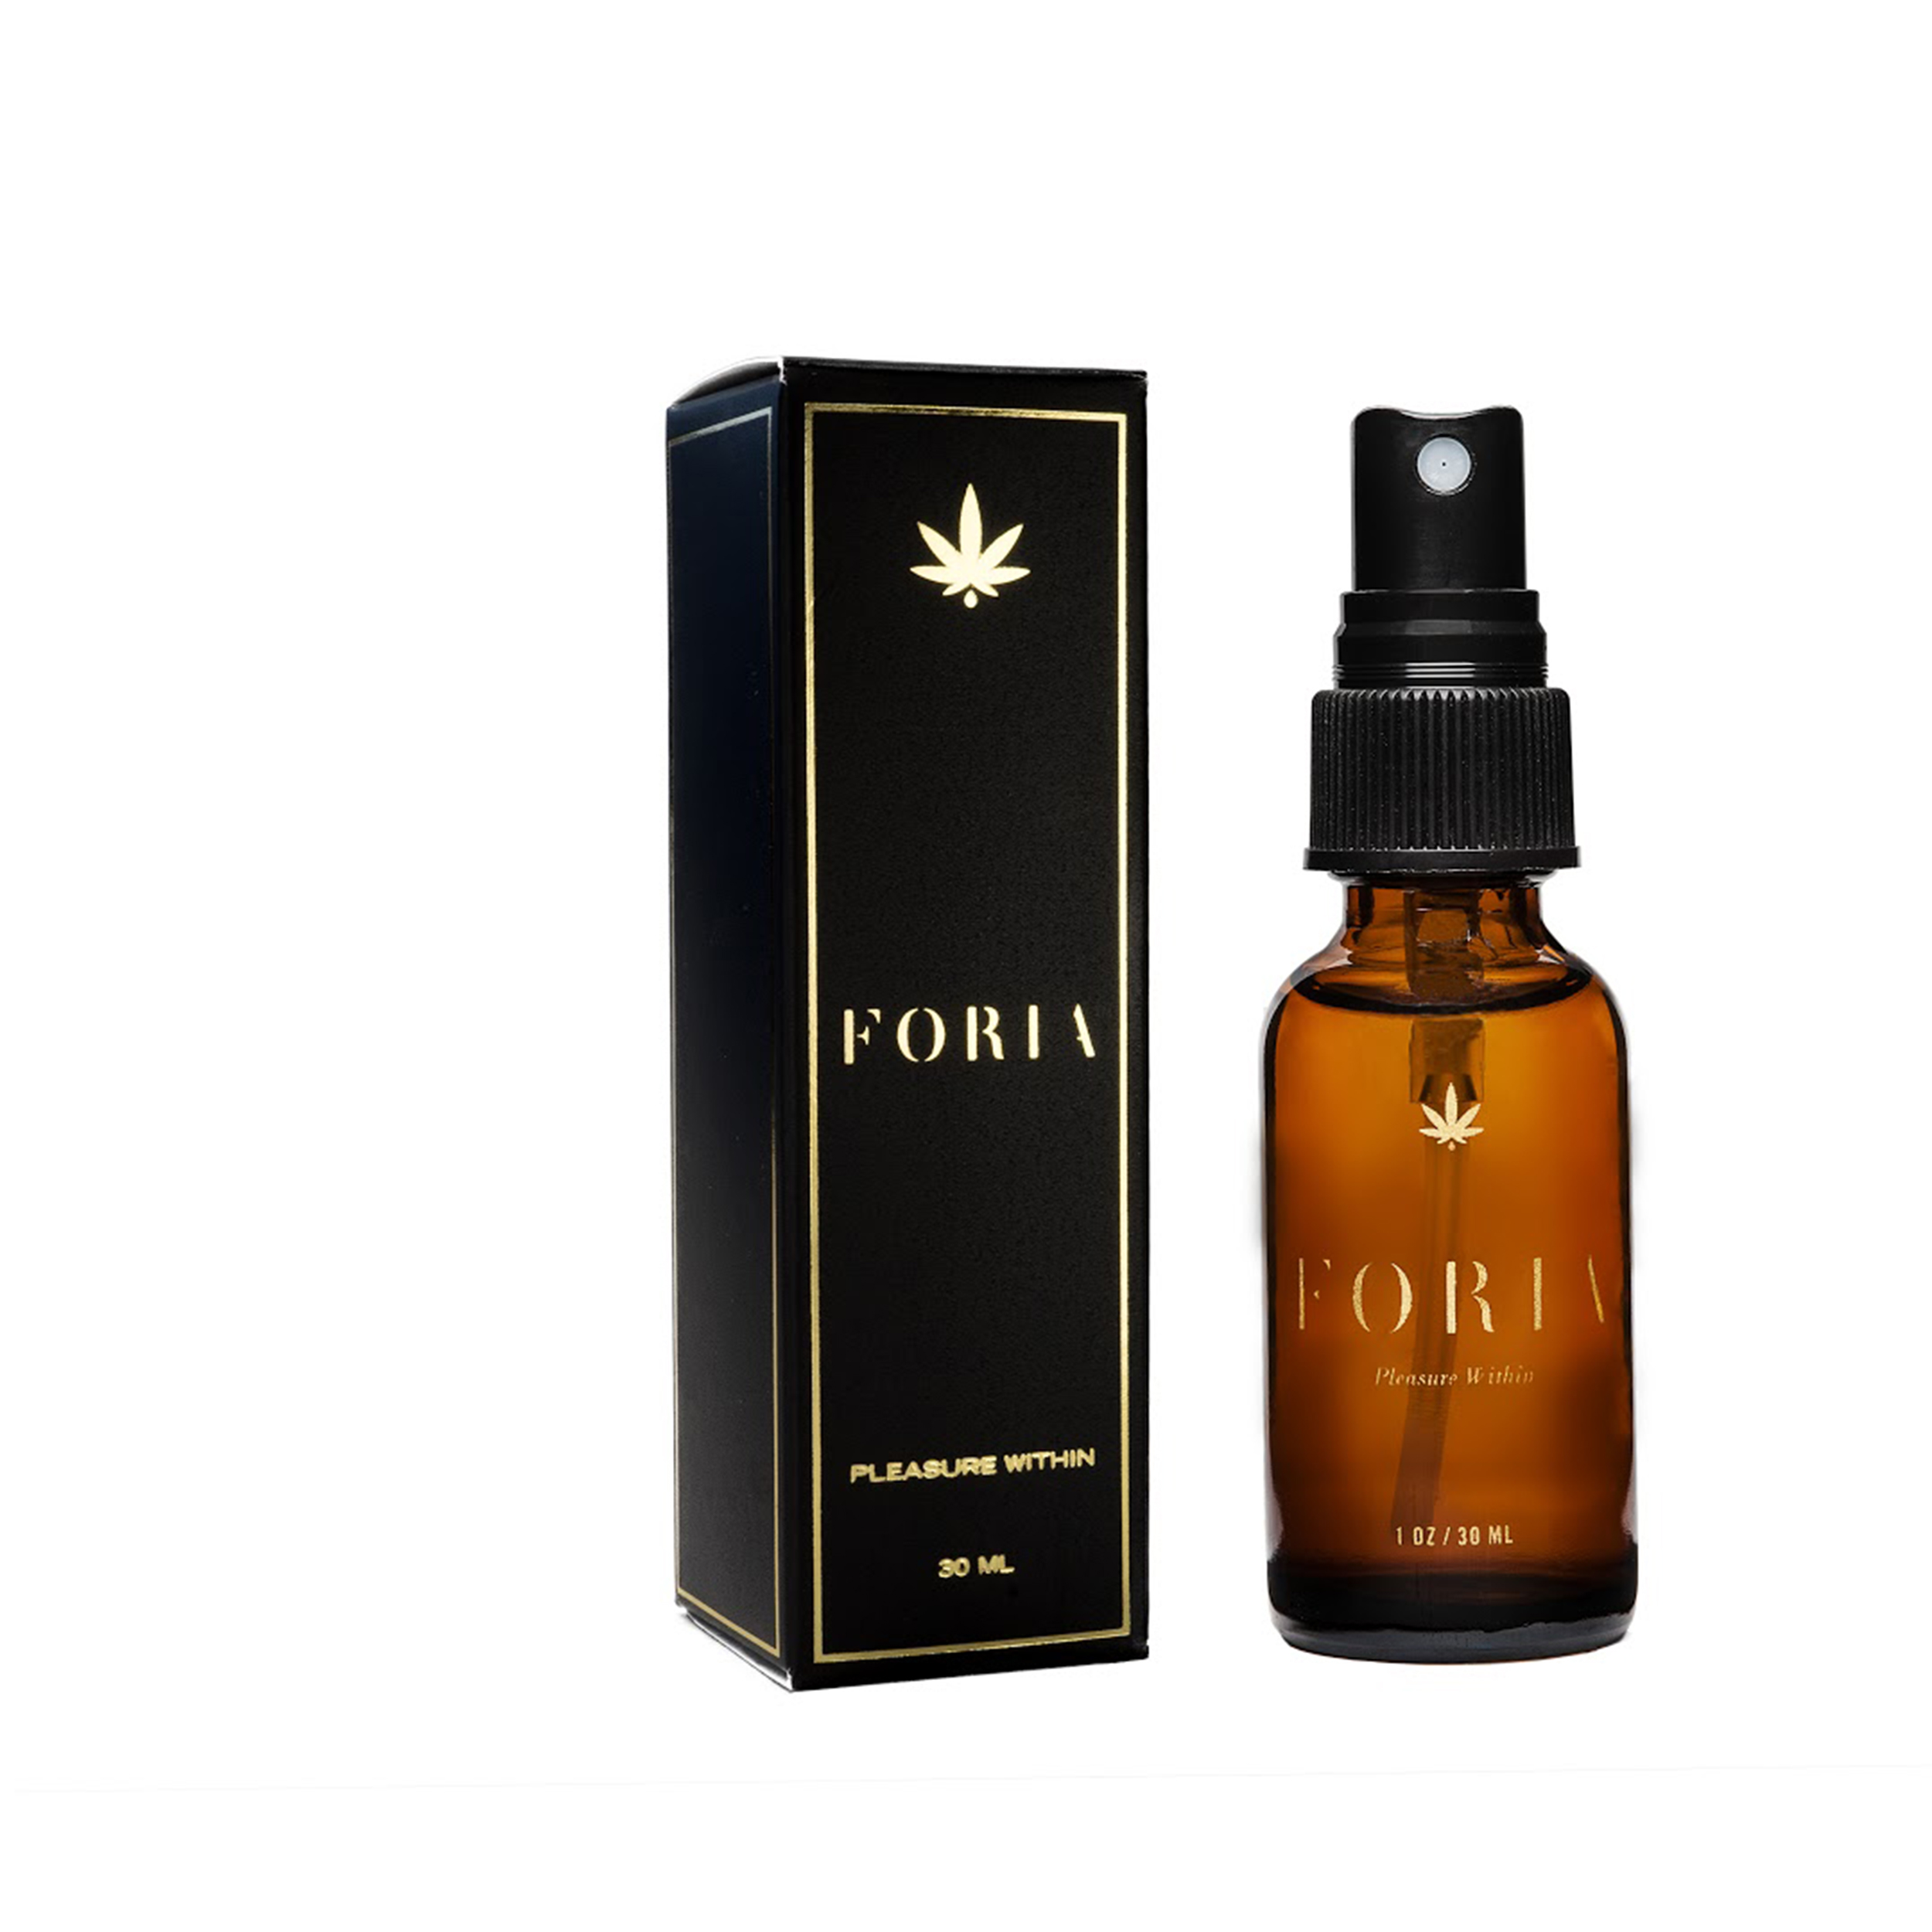 Foria Pleasure Products